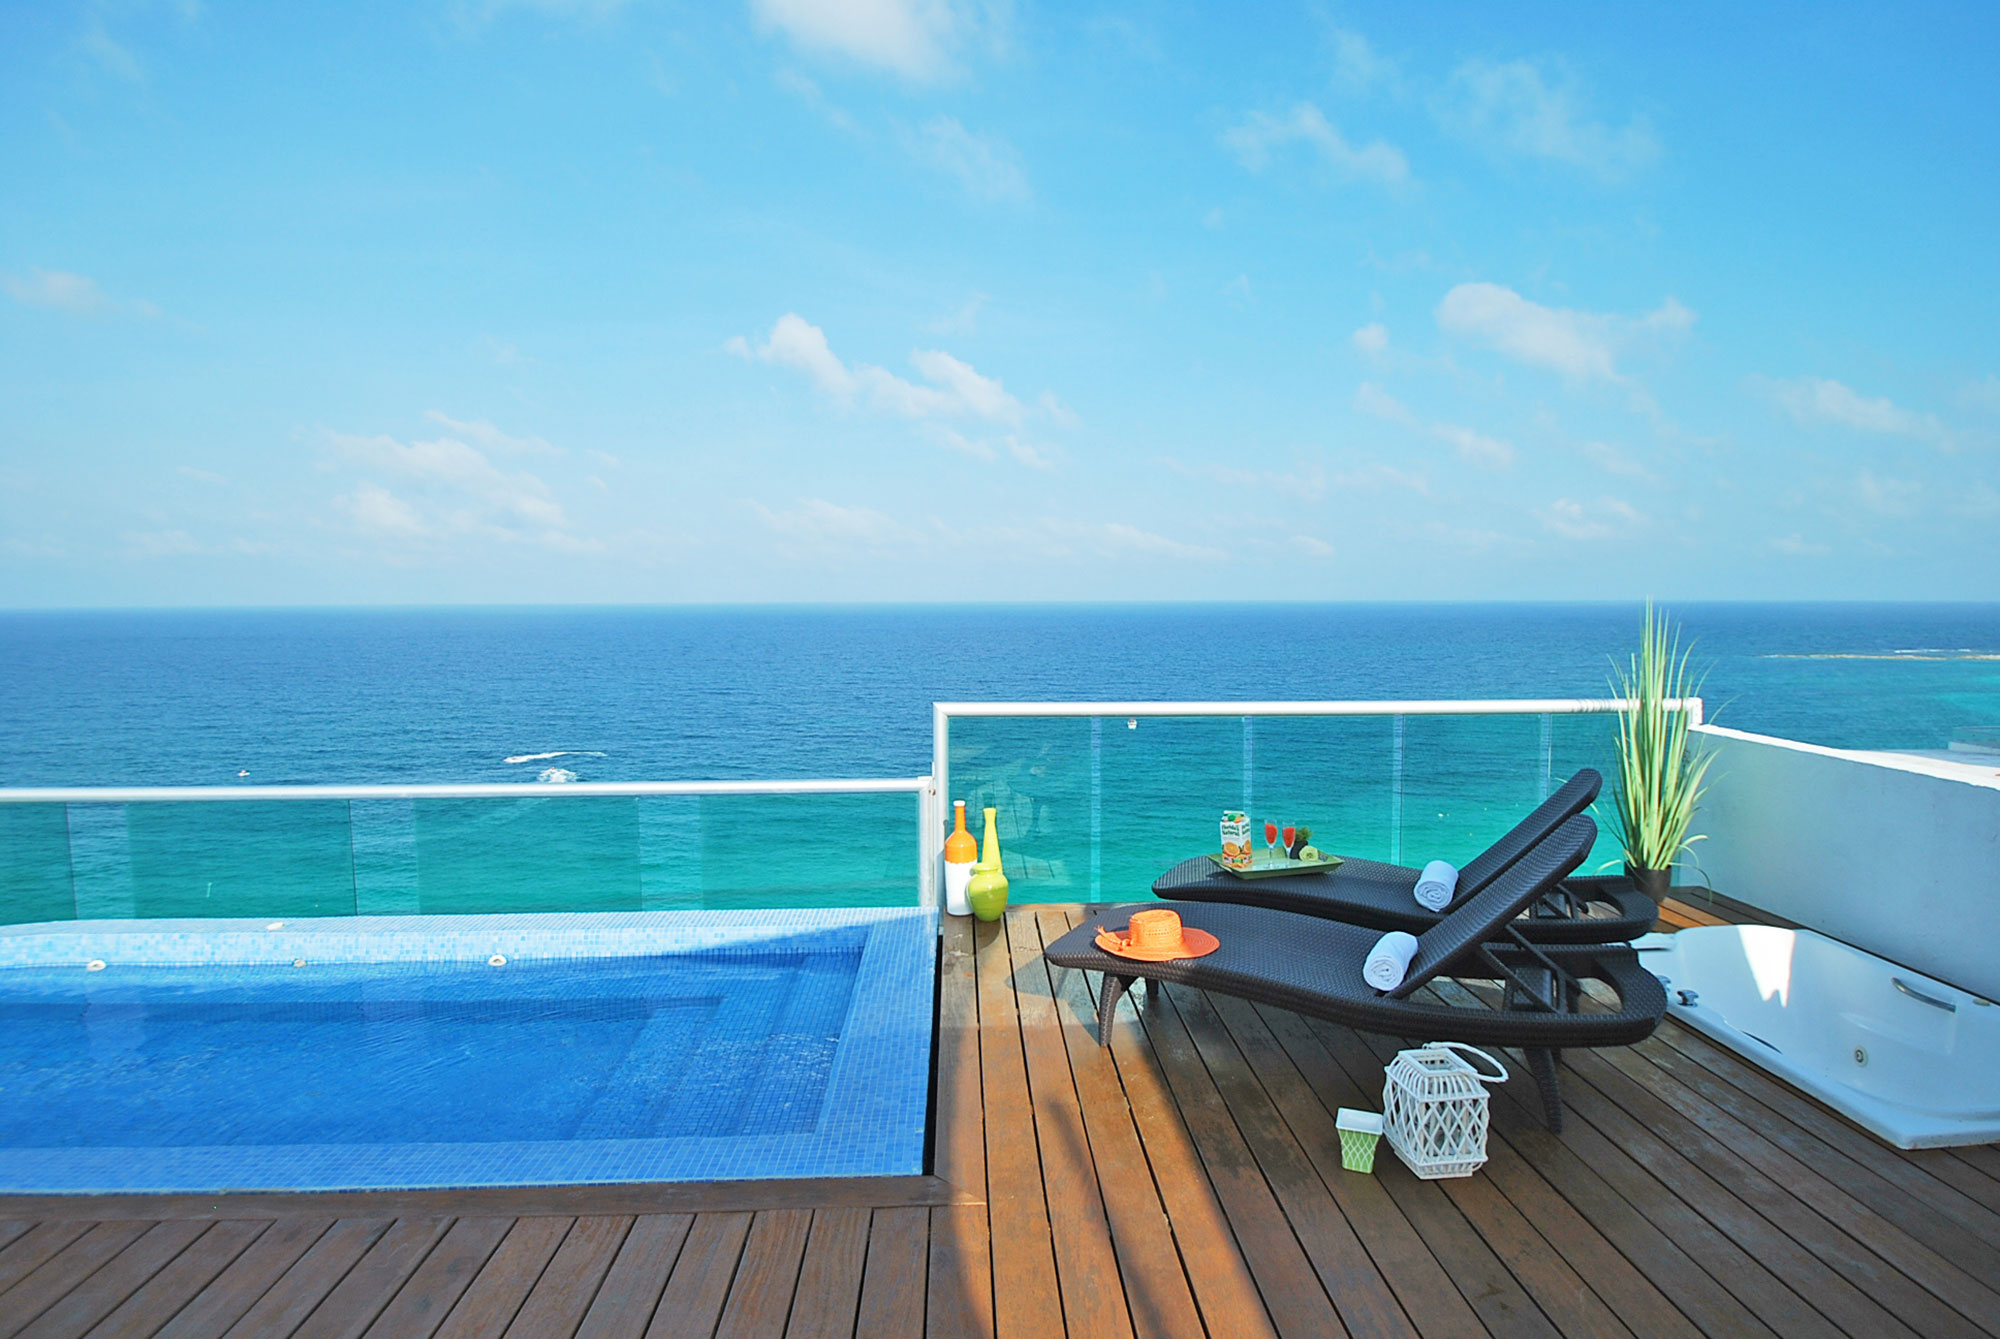 The breathtaking view from the rooftop pool at 2000 of Tim's Ocean Condos in Cancun Mexico